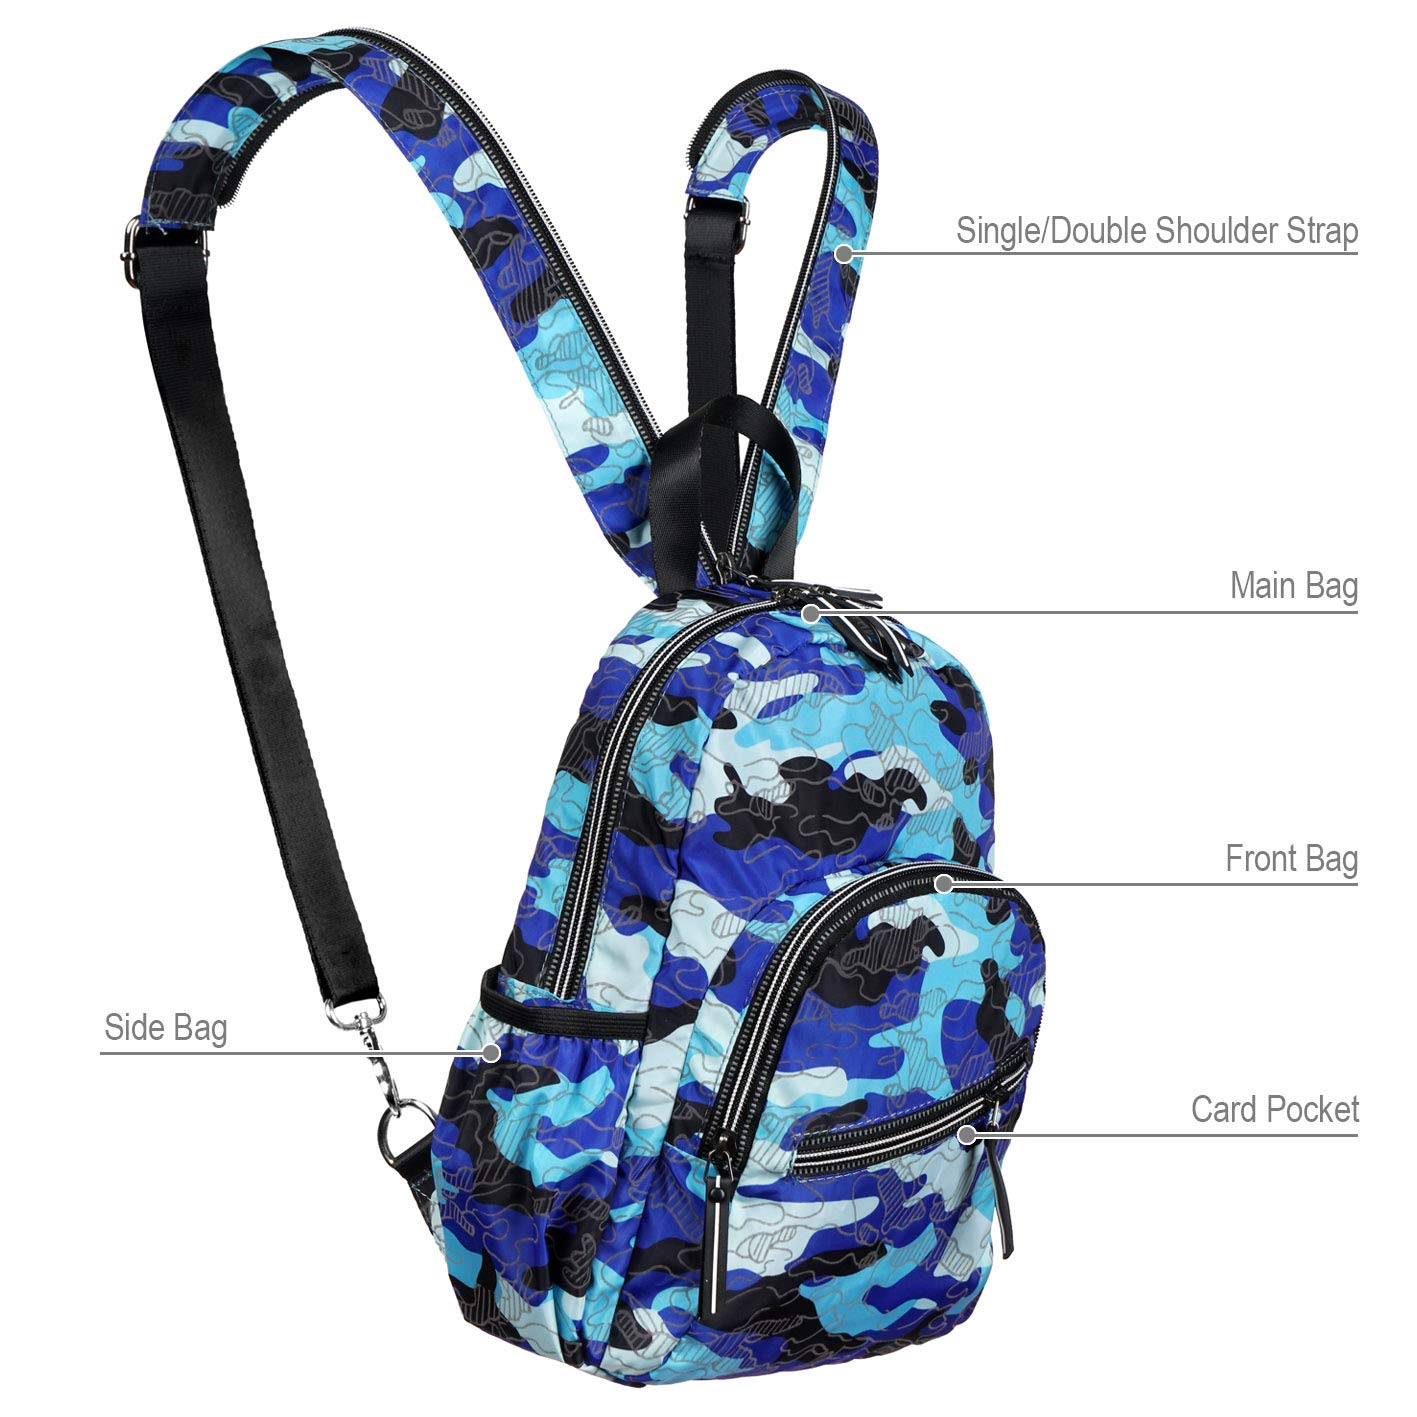 ed5ad77e1570 DivaCat Packable Backpack Sling Crossbody Bag Durable Waterproof Backpack  Daypack for School Travel Hiking Biking Camping Outdoor Camel Blue